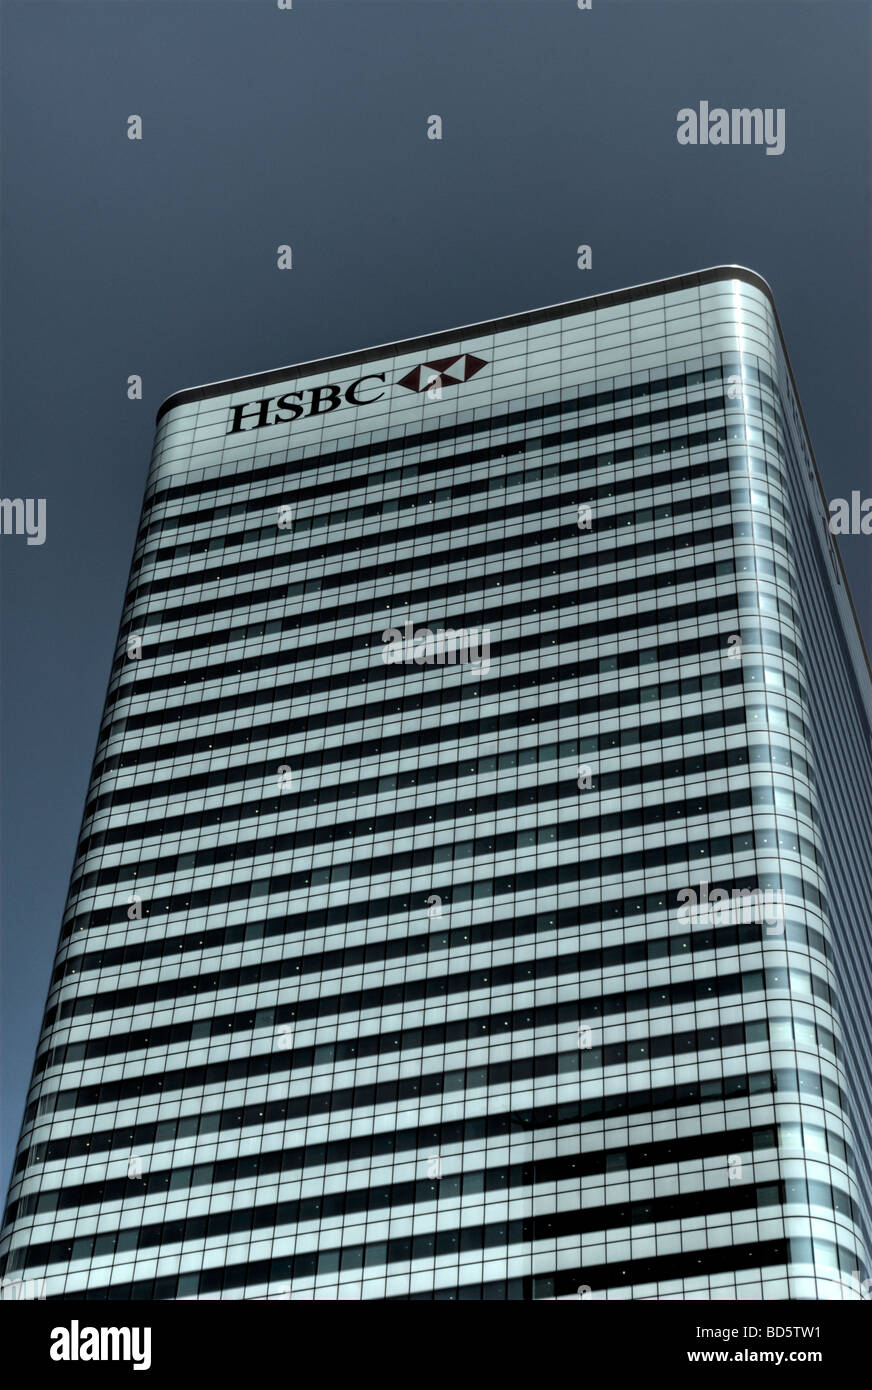 HSBC Tower Group Head Office Canary Wharf Docklands London Britain July 2009 - Stock Image